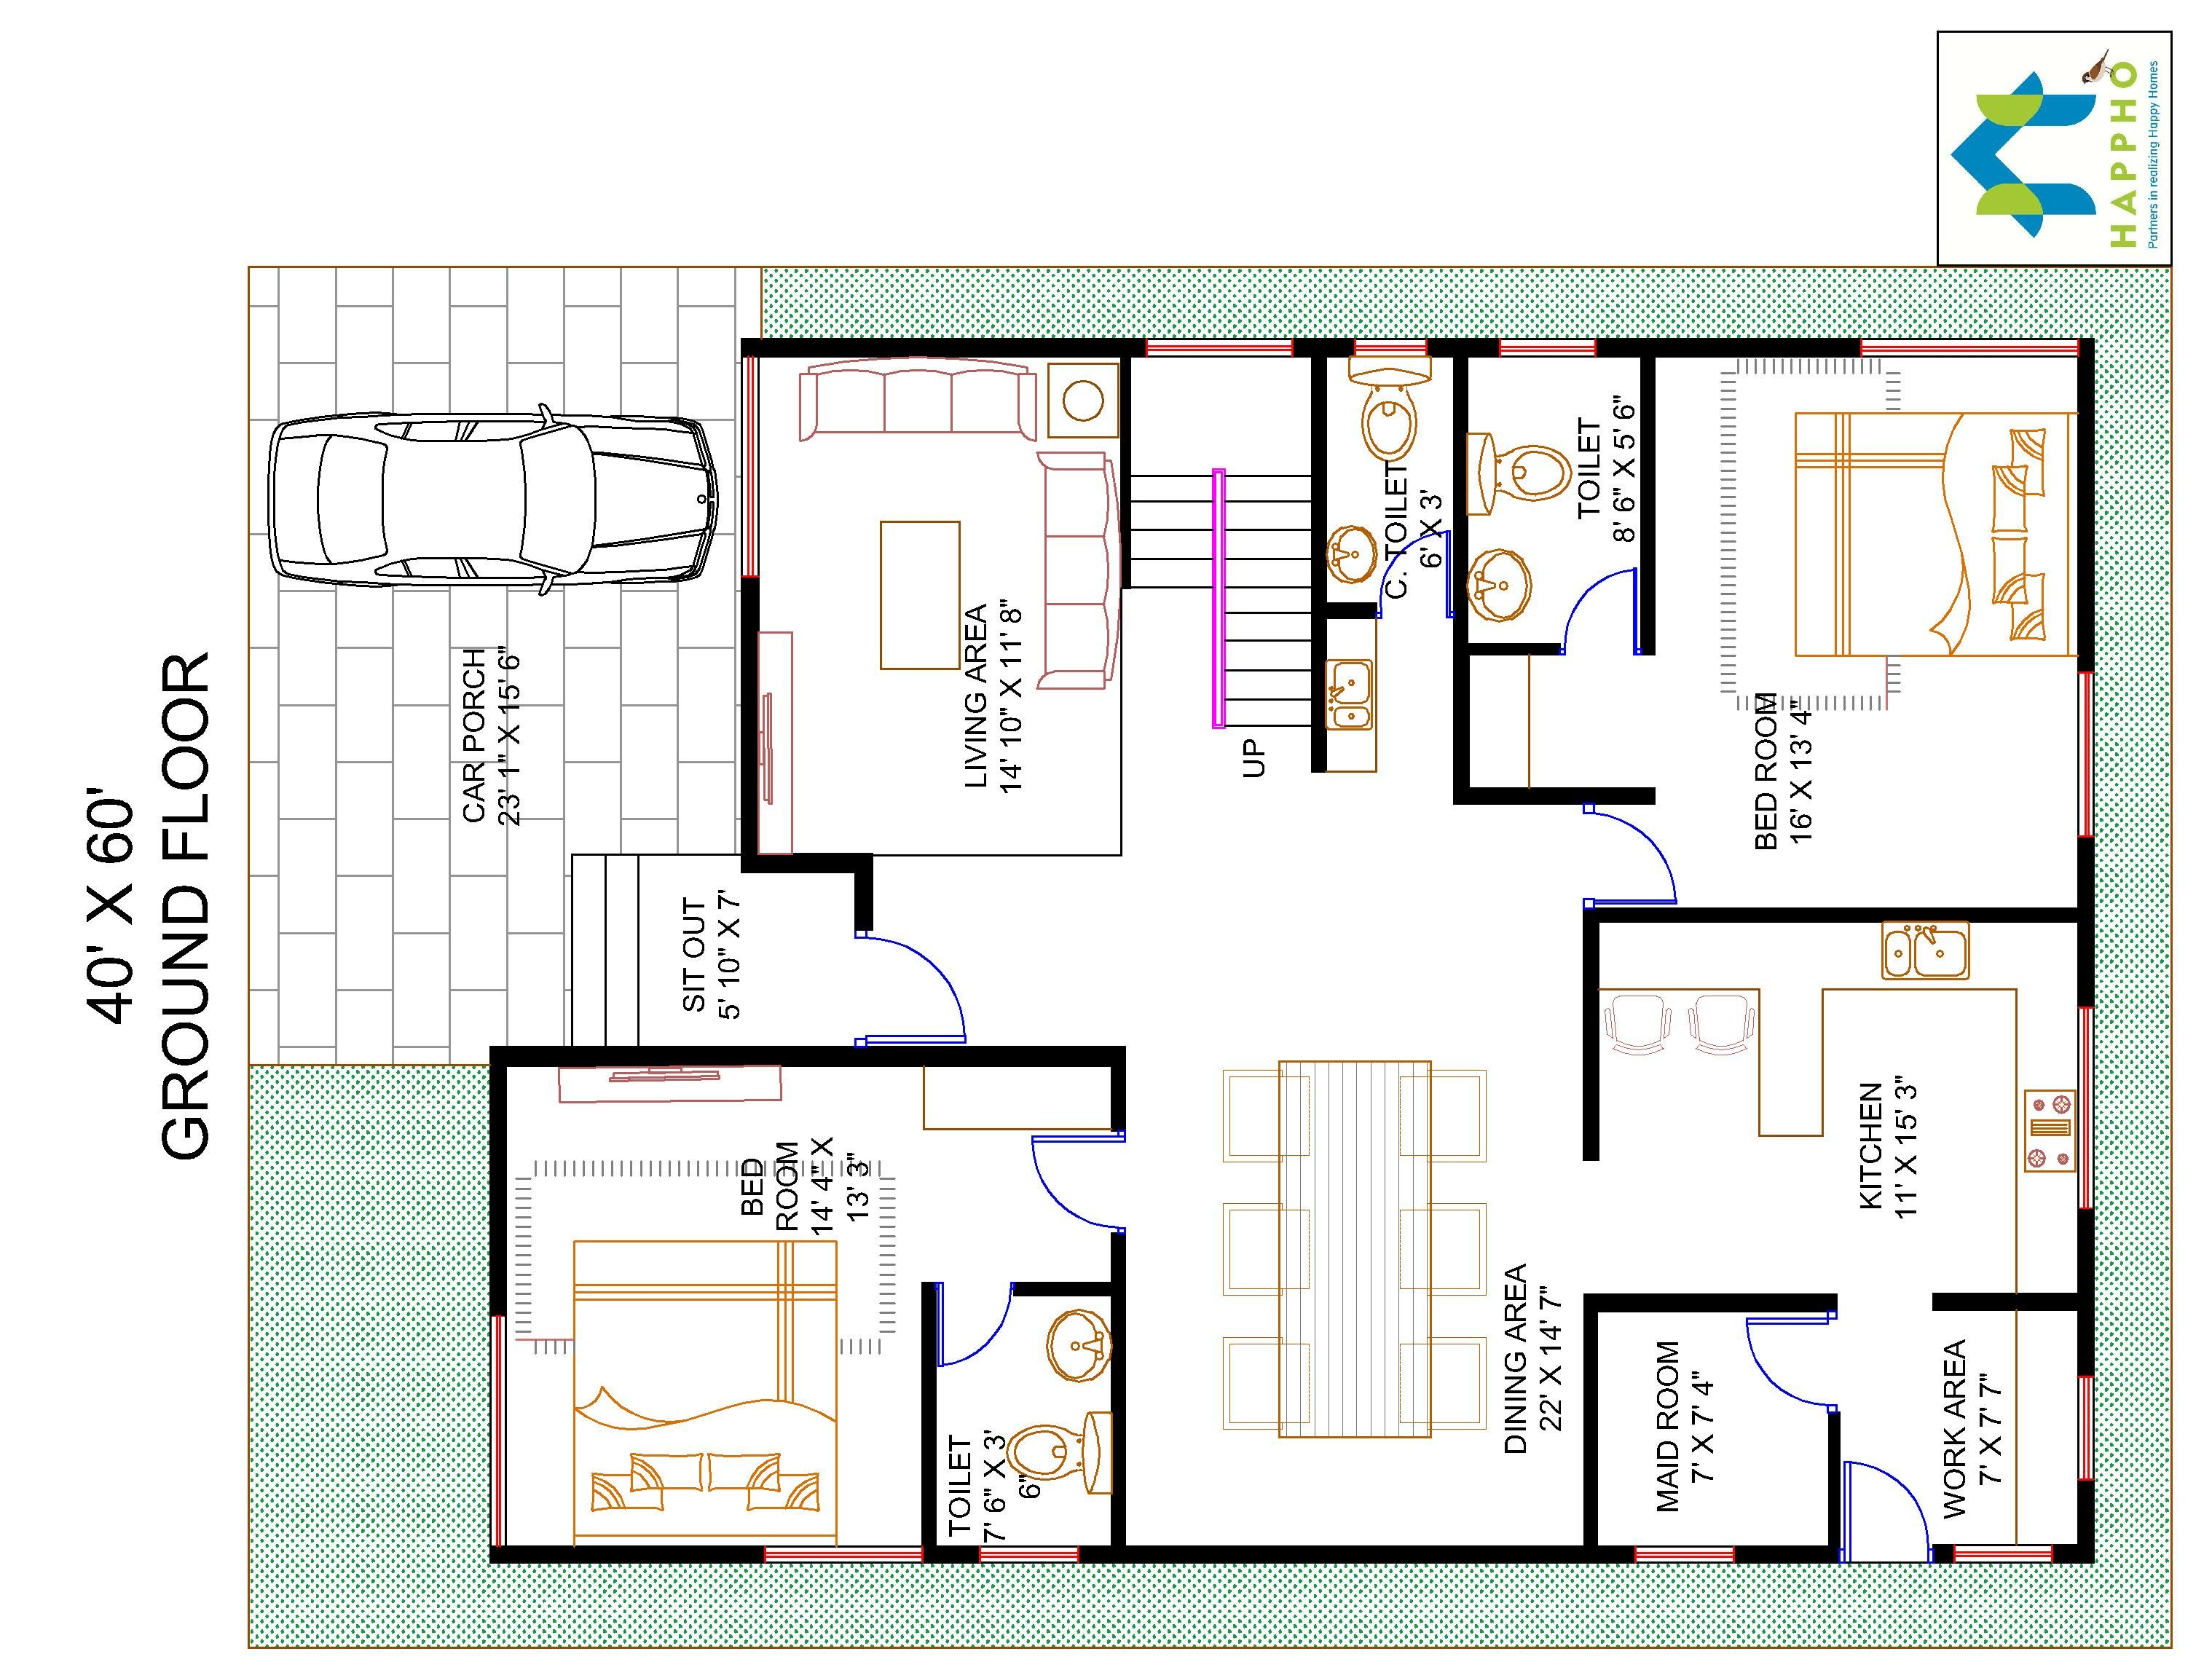 60 40 Floor Plans: 4-BHK Floor Plan For 40 X 60 Plot (2400 Square Feet/267